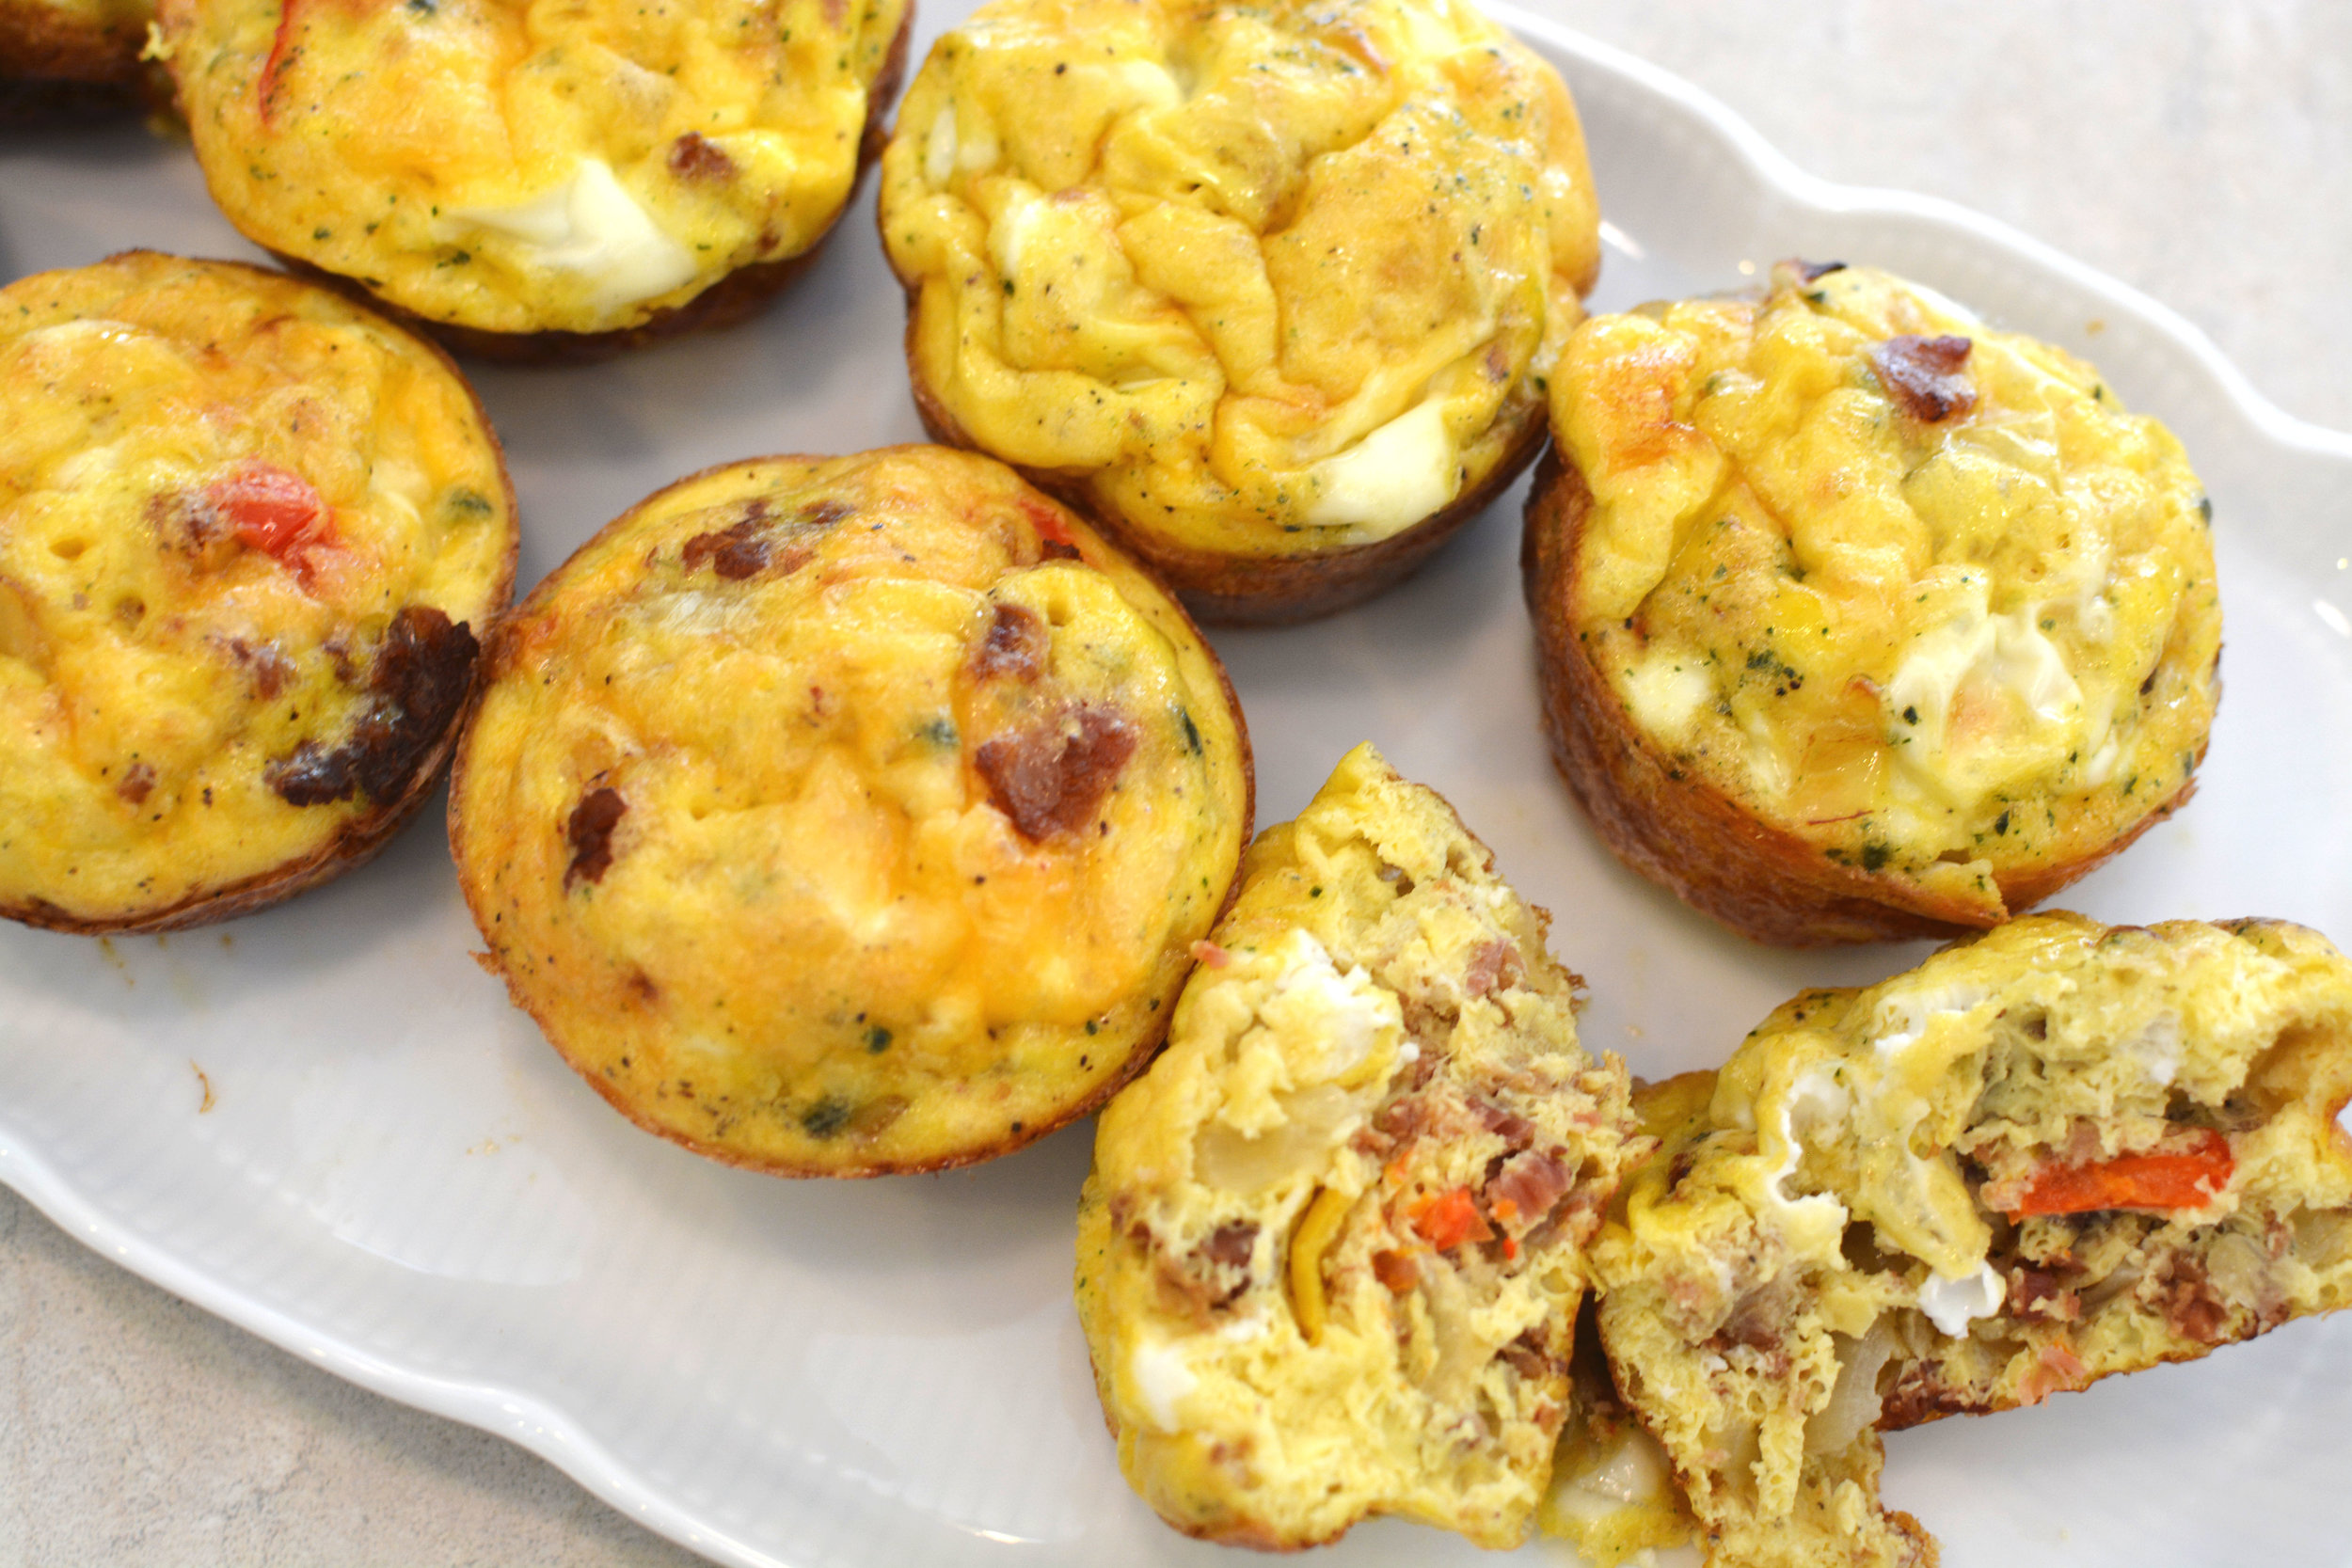 bacon-and-egg-fitmuffin-healthy-recipe-the-second-muse.jpg